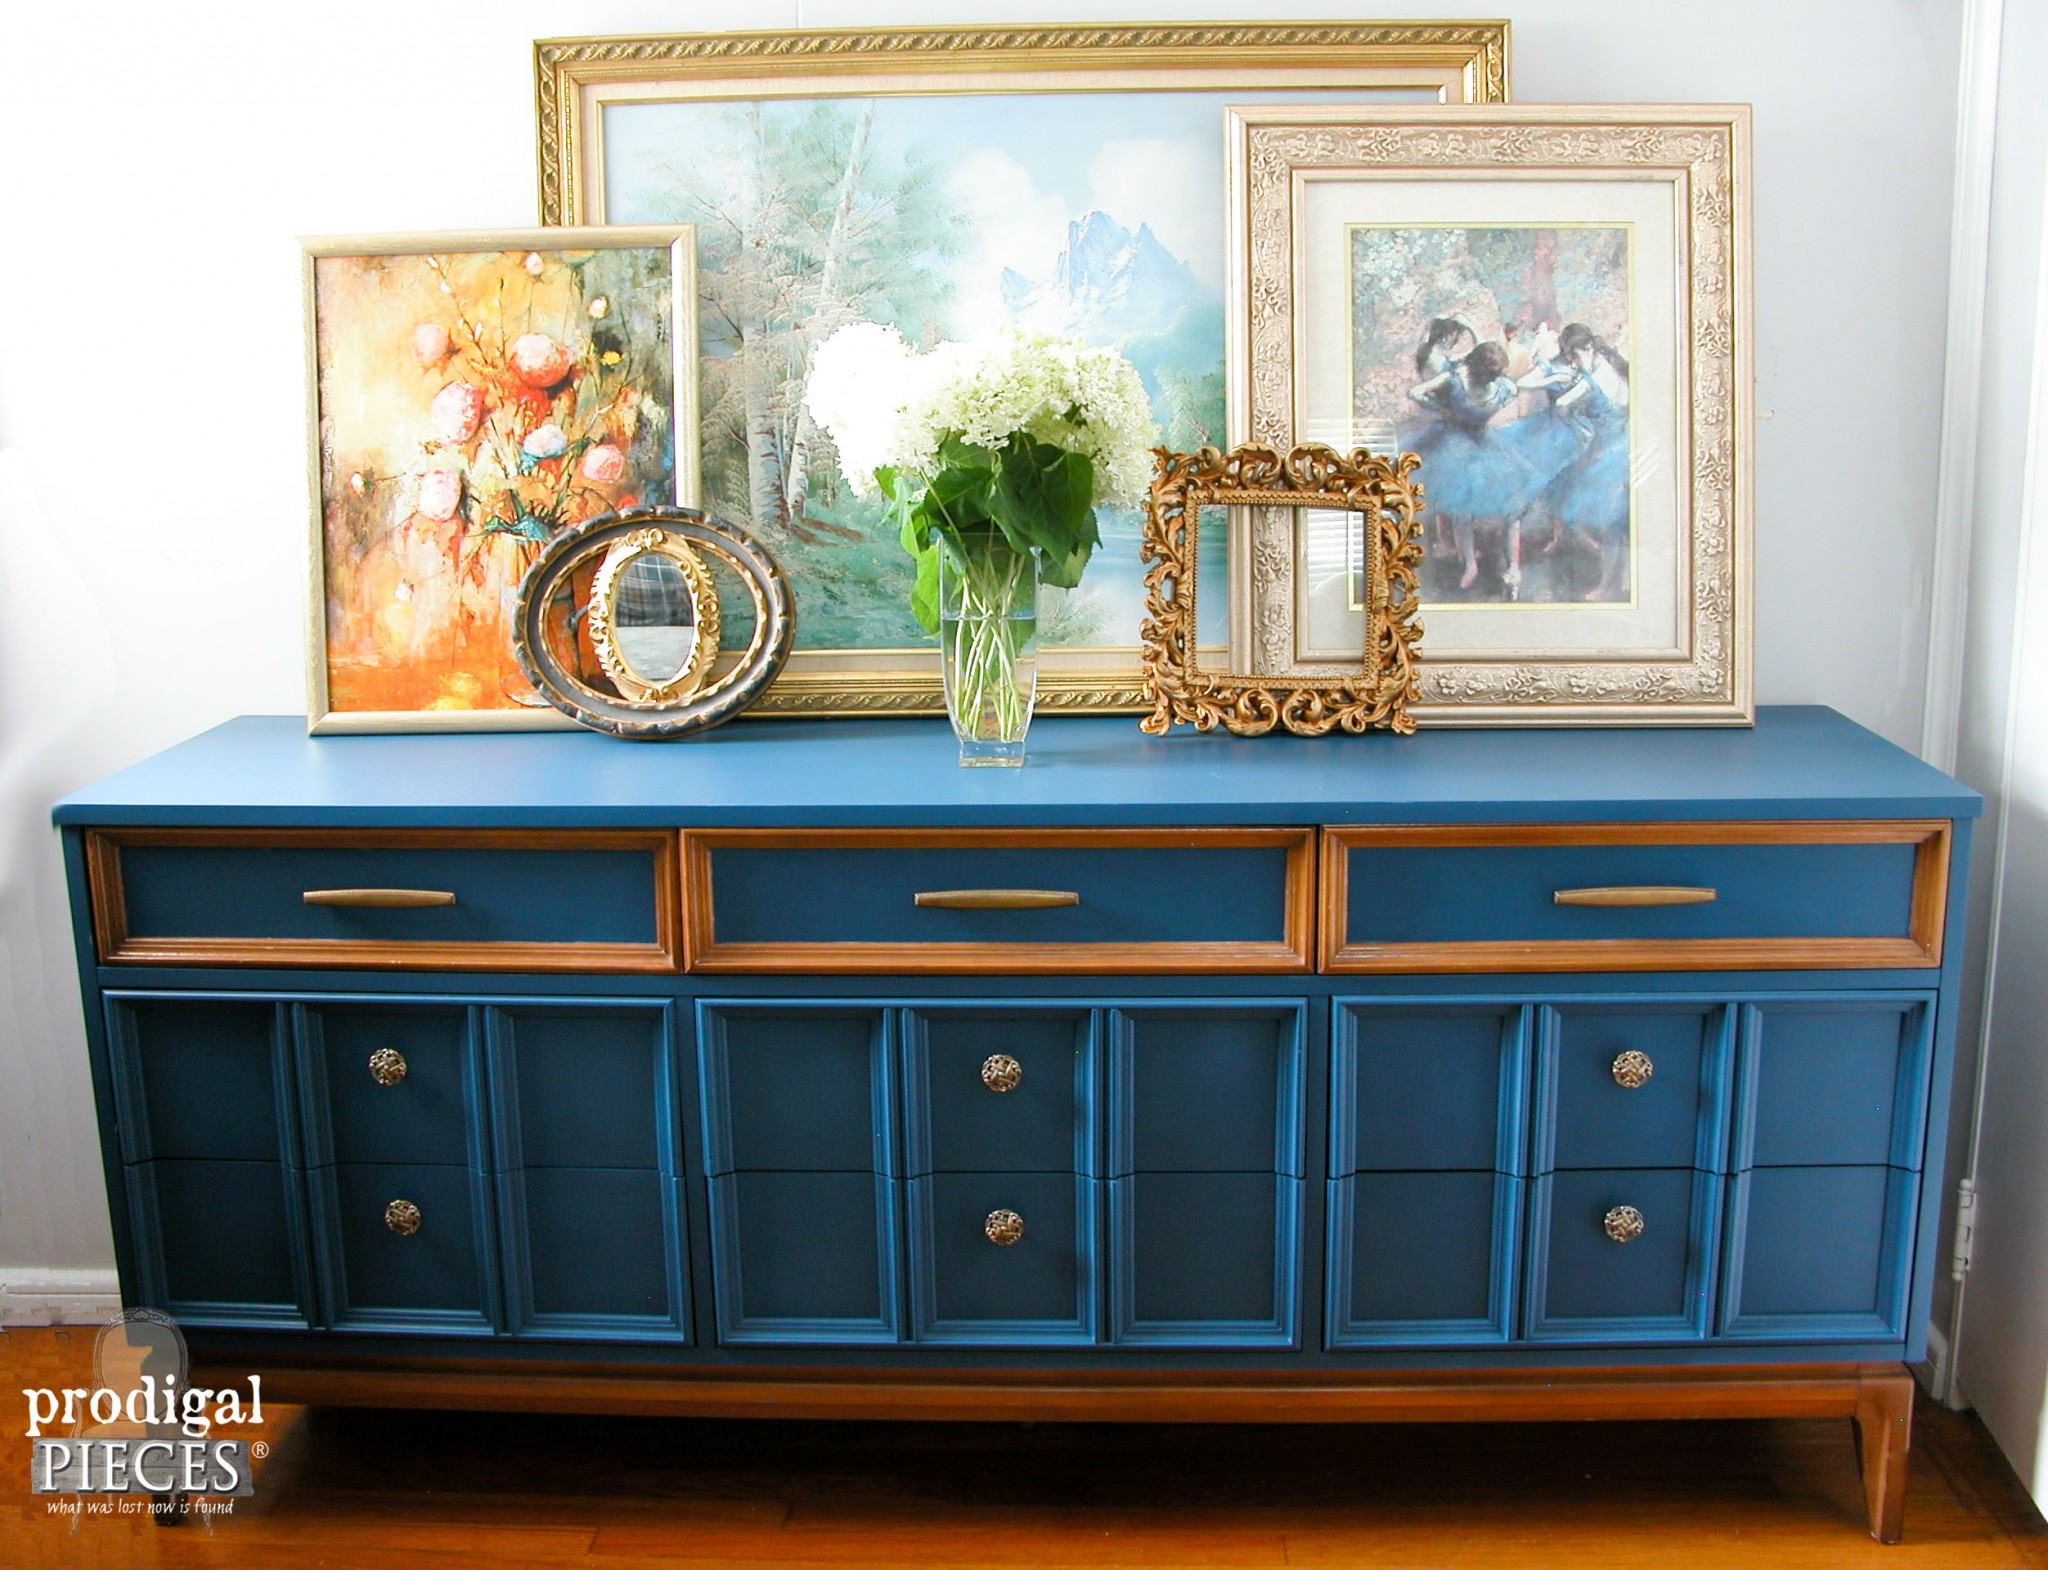 Vintage Mid Century Modern Dixie Dresser in Blue by Prodigal Pieces | www.prodigalpieces.com